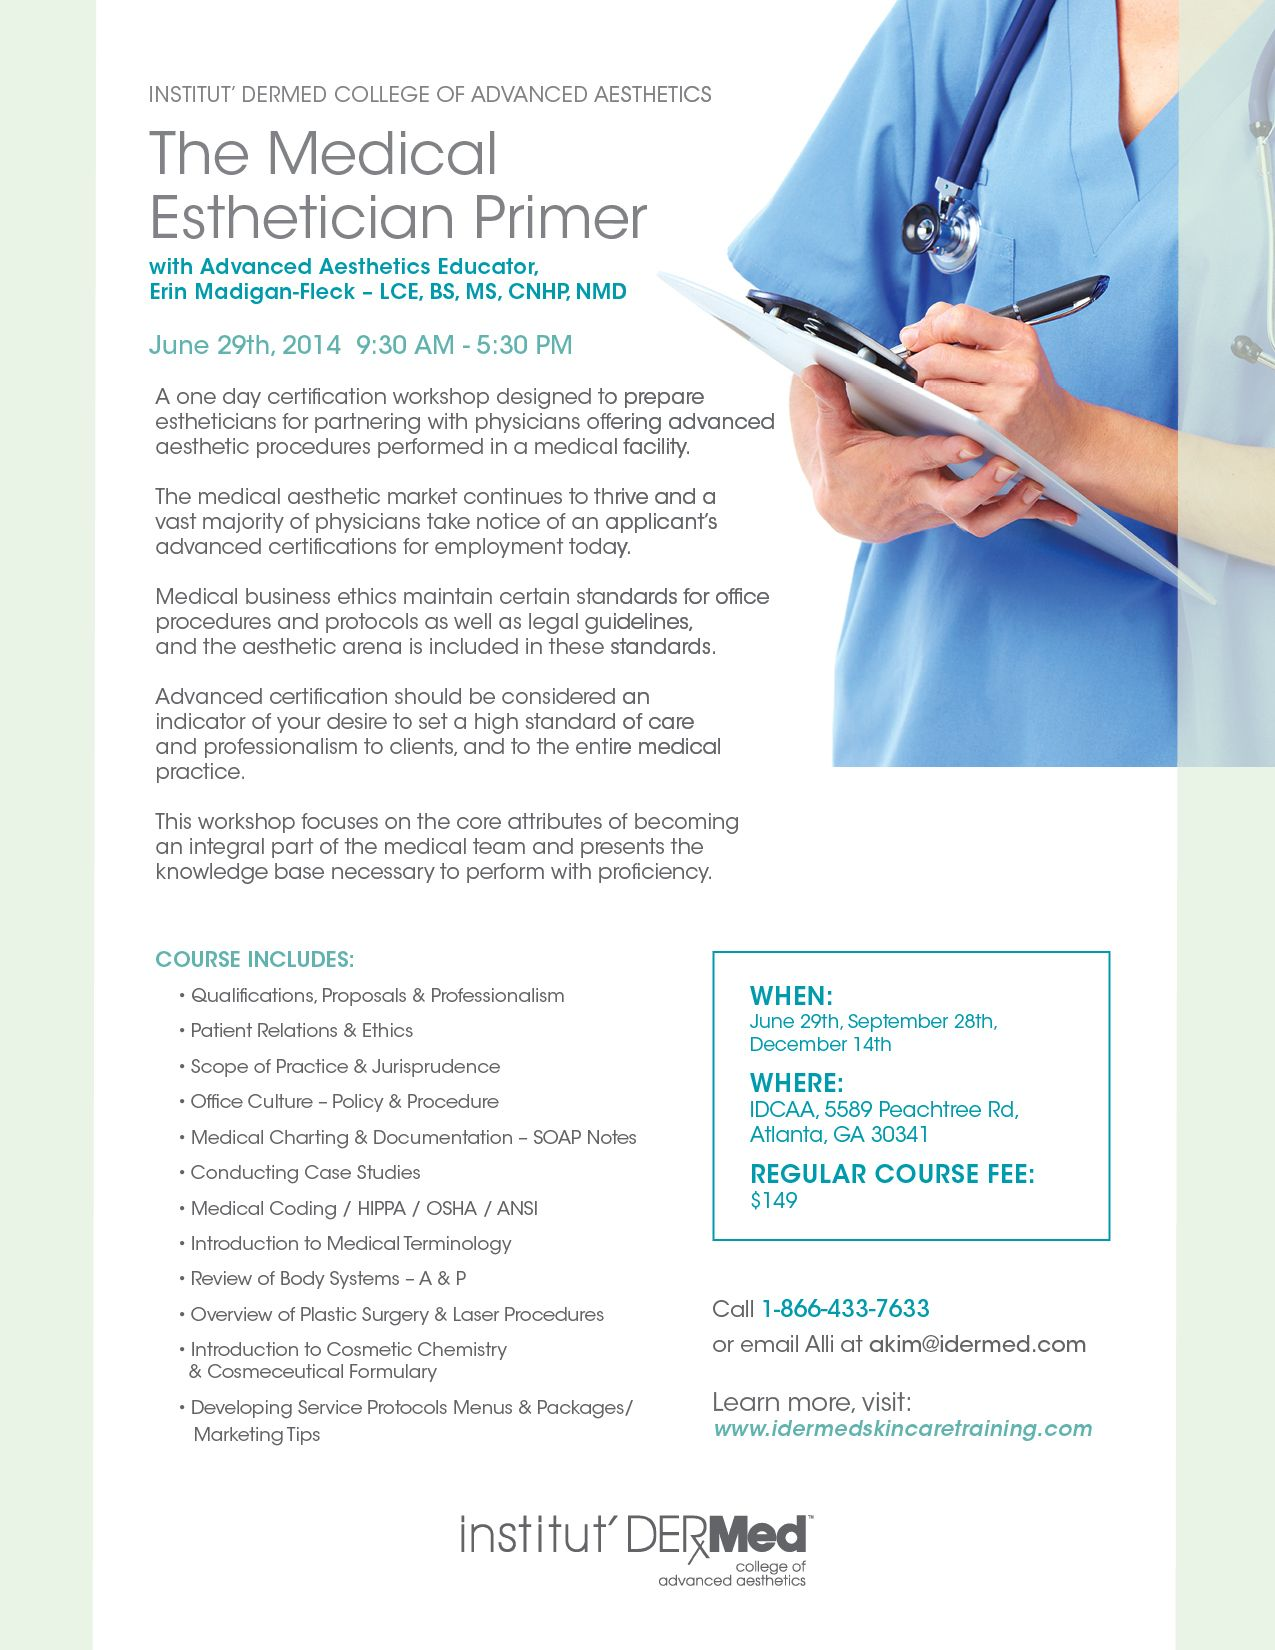 Medical Esthetician Primer A One Day Certification Workshop Designed To Prepare Estheticians For Medical Esthetician Medical Aesthetician Advanced Aesthetics